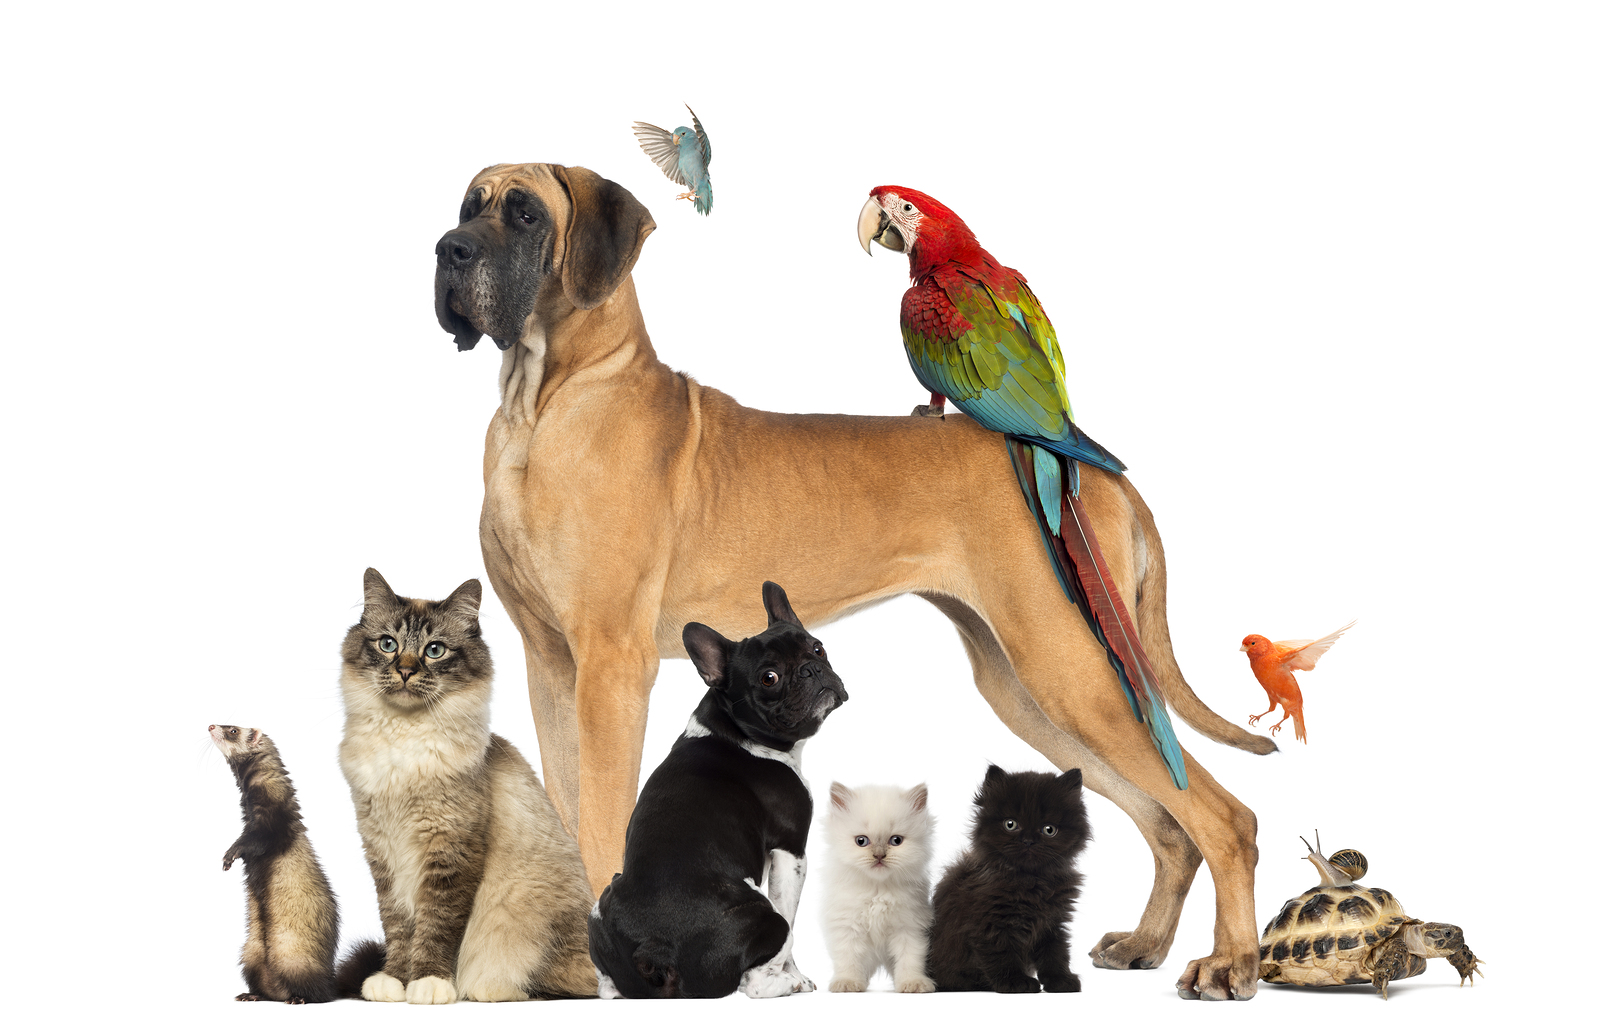 Get a Sainsburys Pet Insurance coverage Coverage – You Will Be Glad You Did